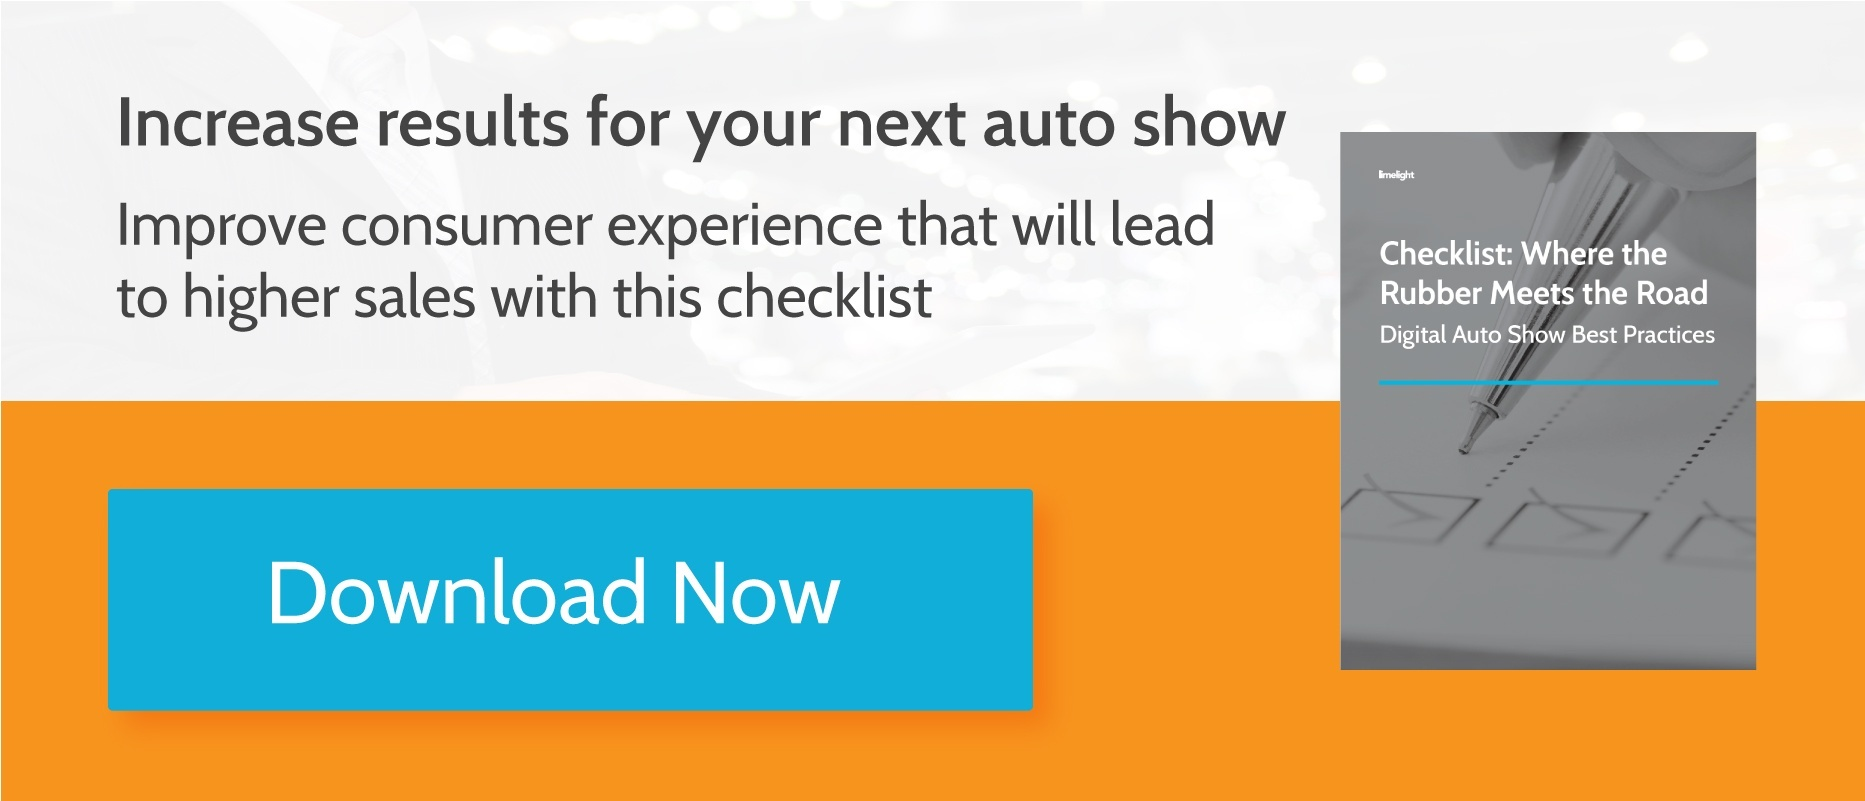 Where the Rubber Meets the Road: Digital Auto Show Best Practices [Checklist]